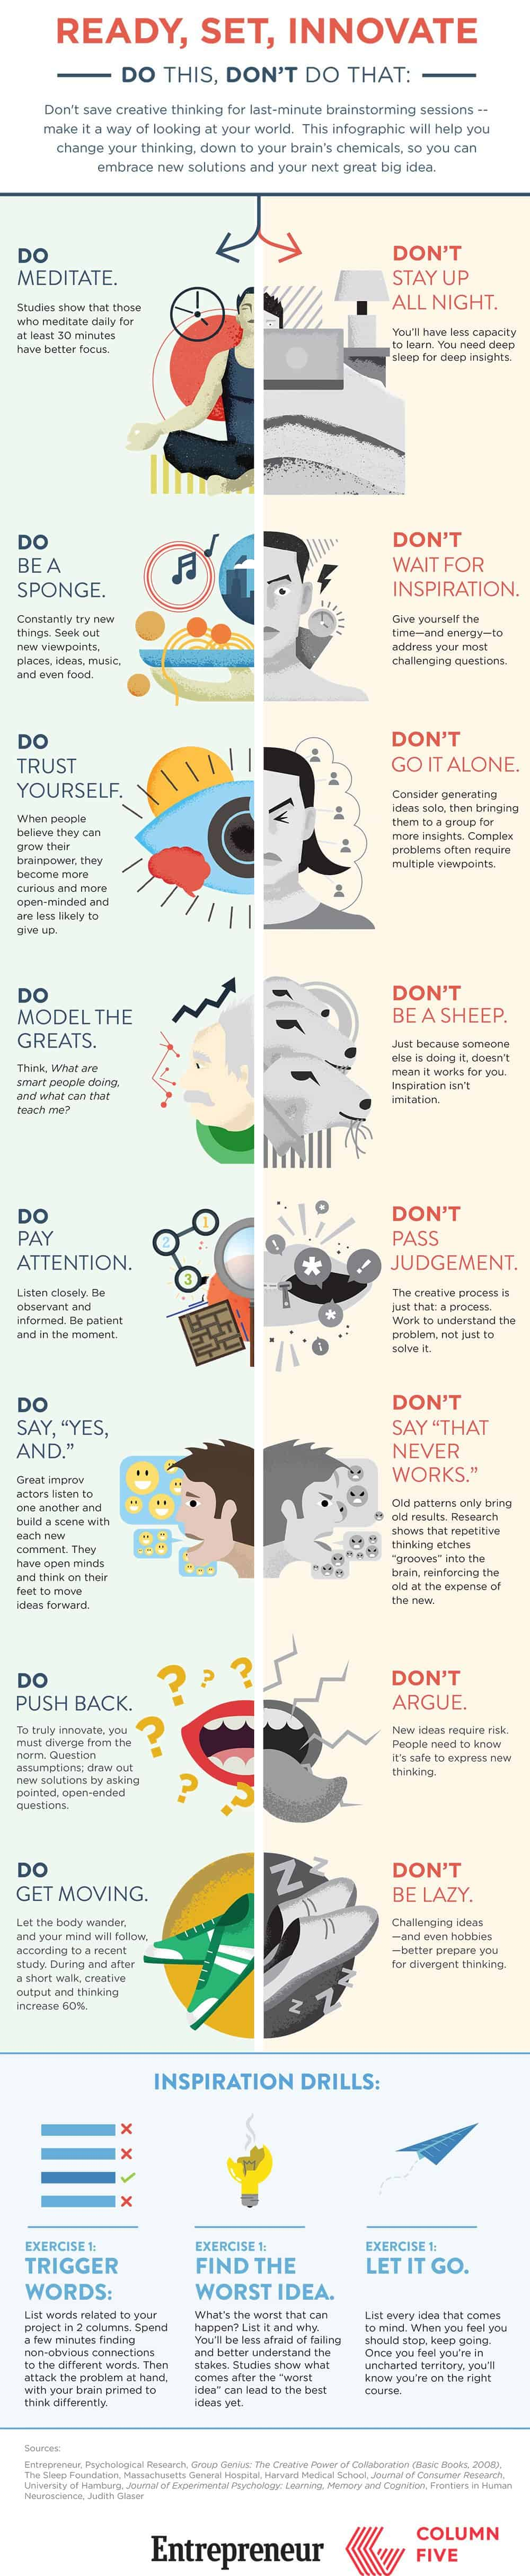 Infogrpahic from Entrepreneur about dos and donts for your creativity